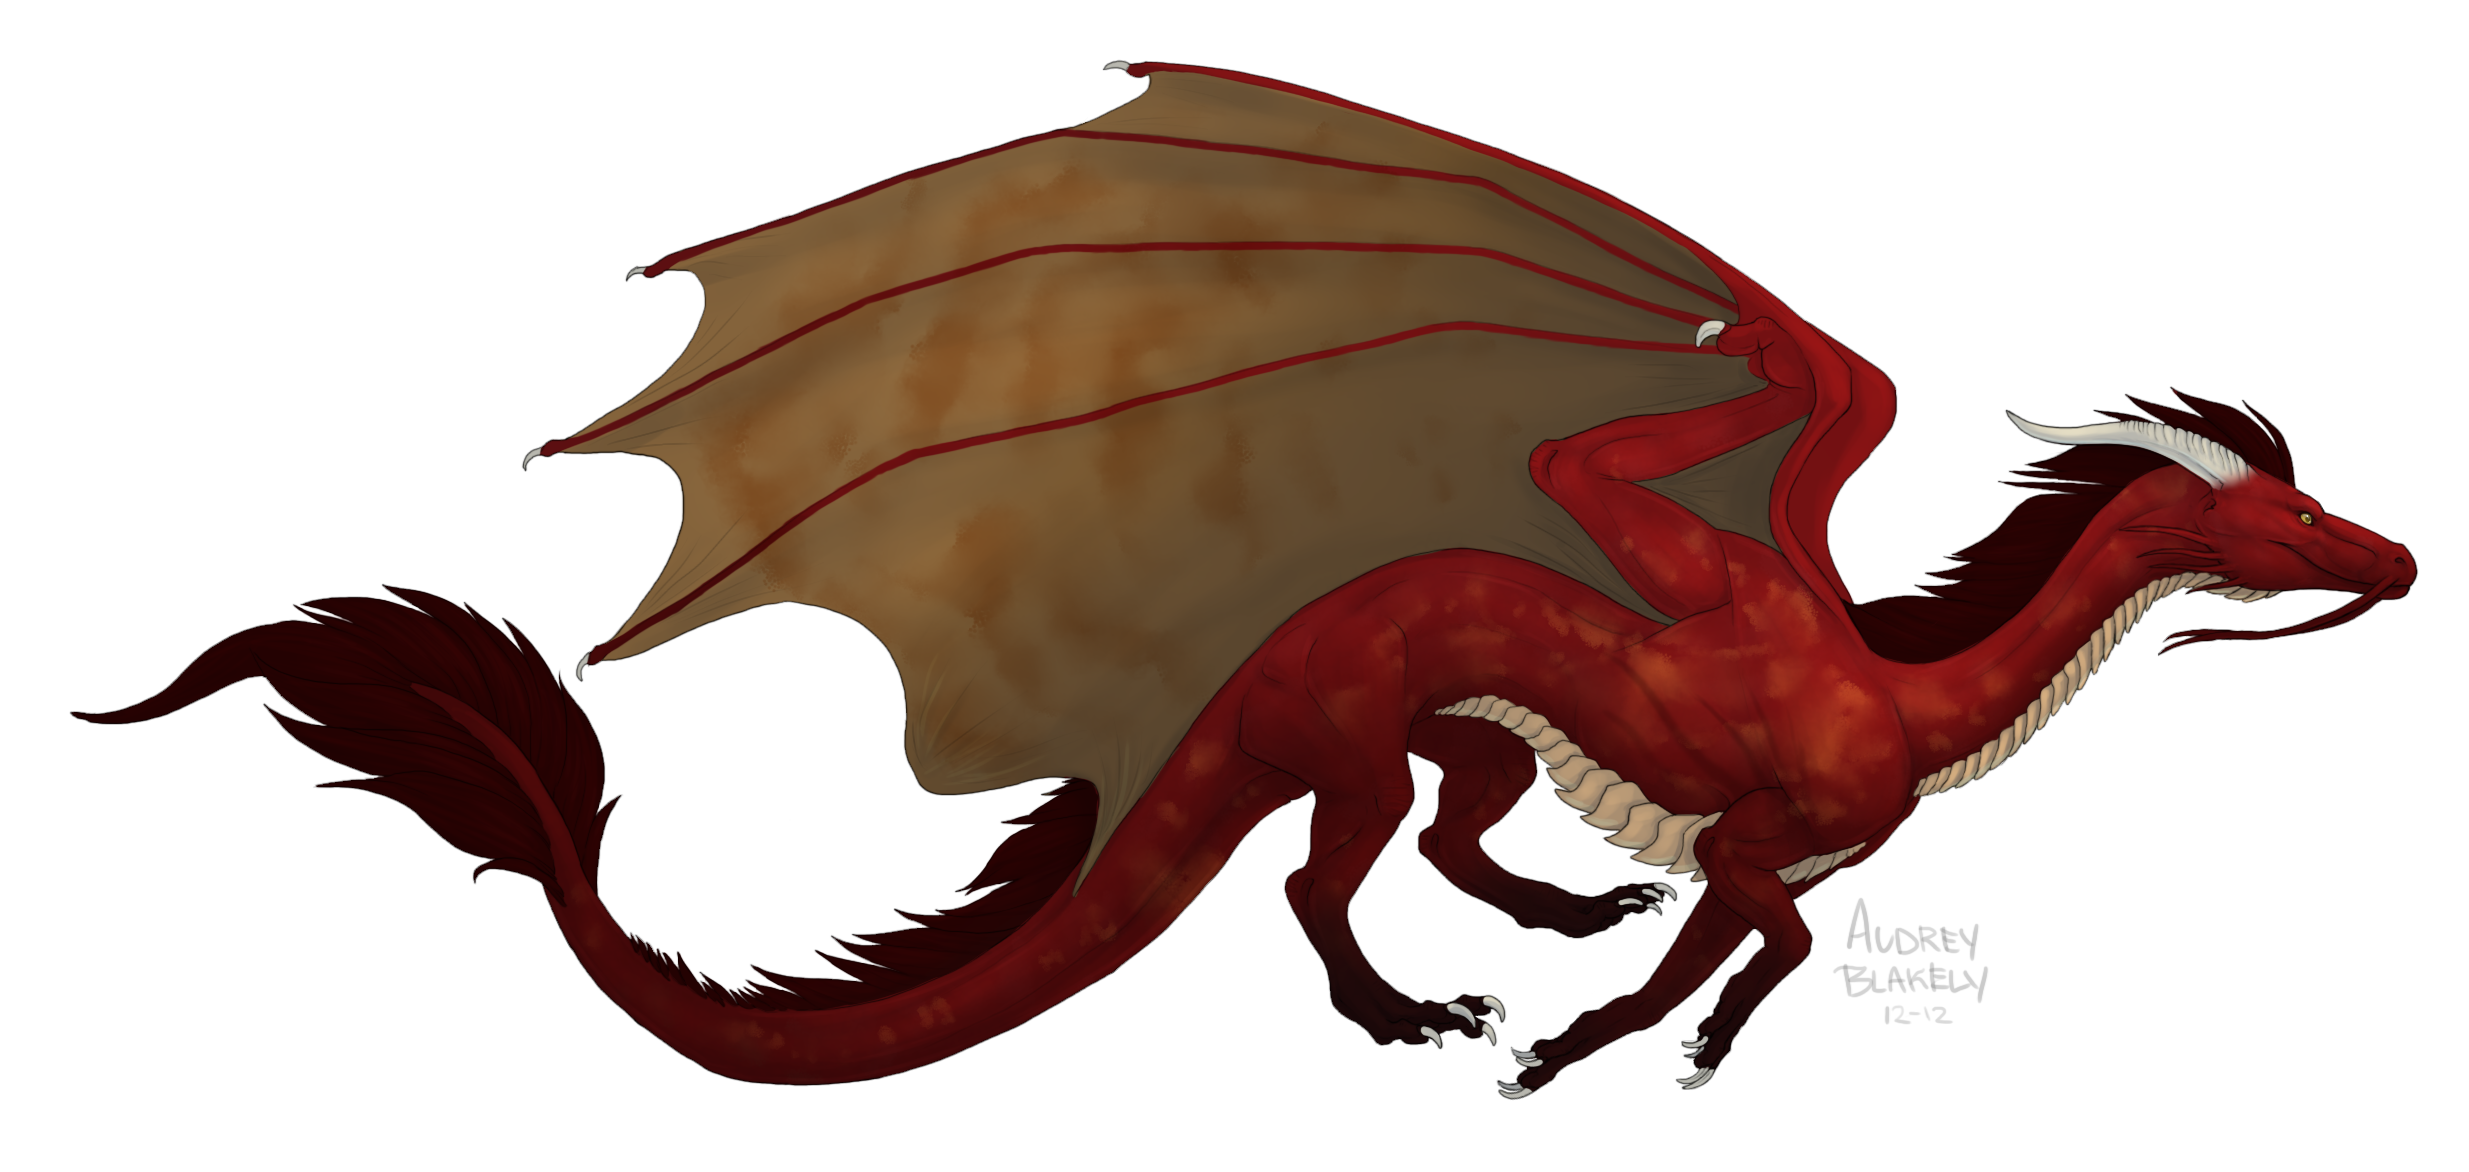 Red Weastern Dragon by Scaleeth